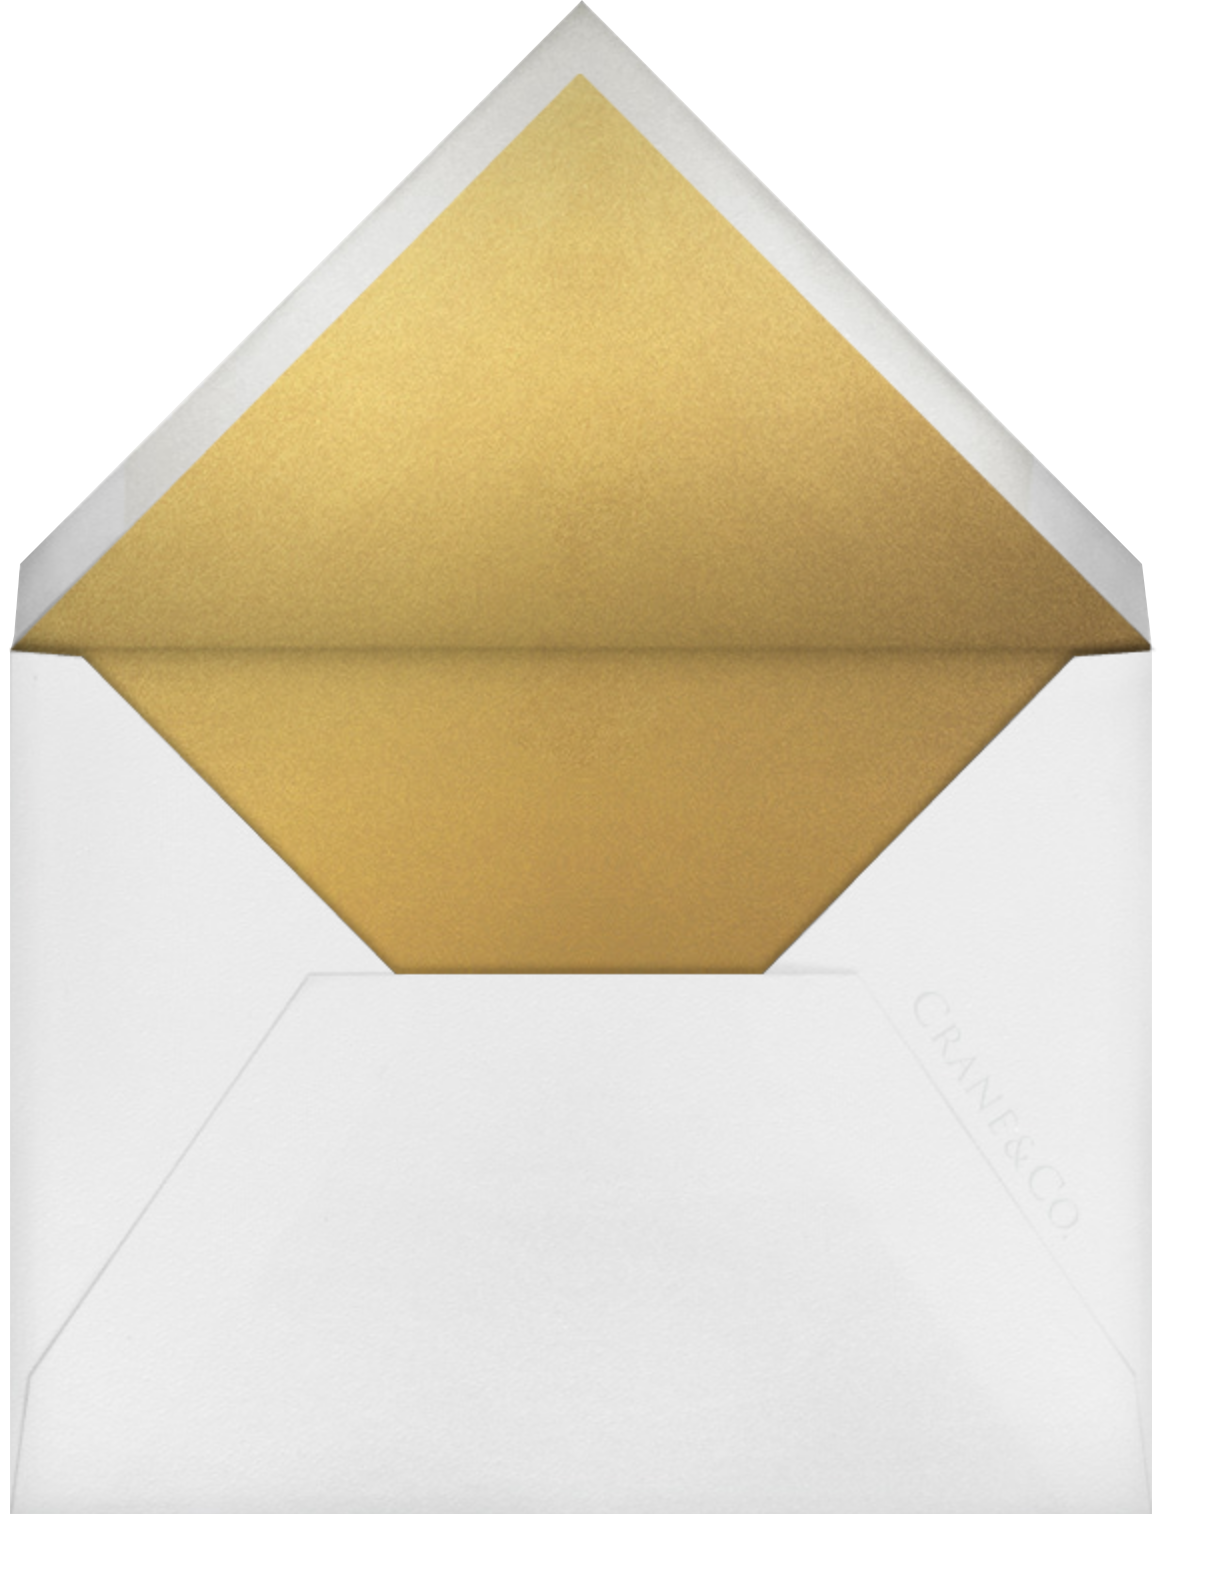 Marchmain - Medium Gold - Paperless Post - All - envelope back